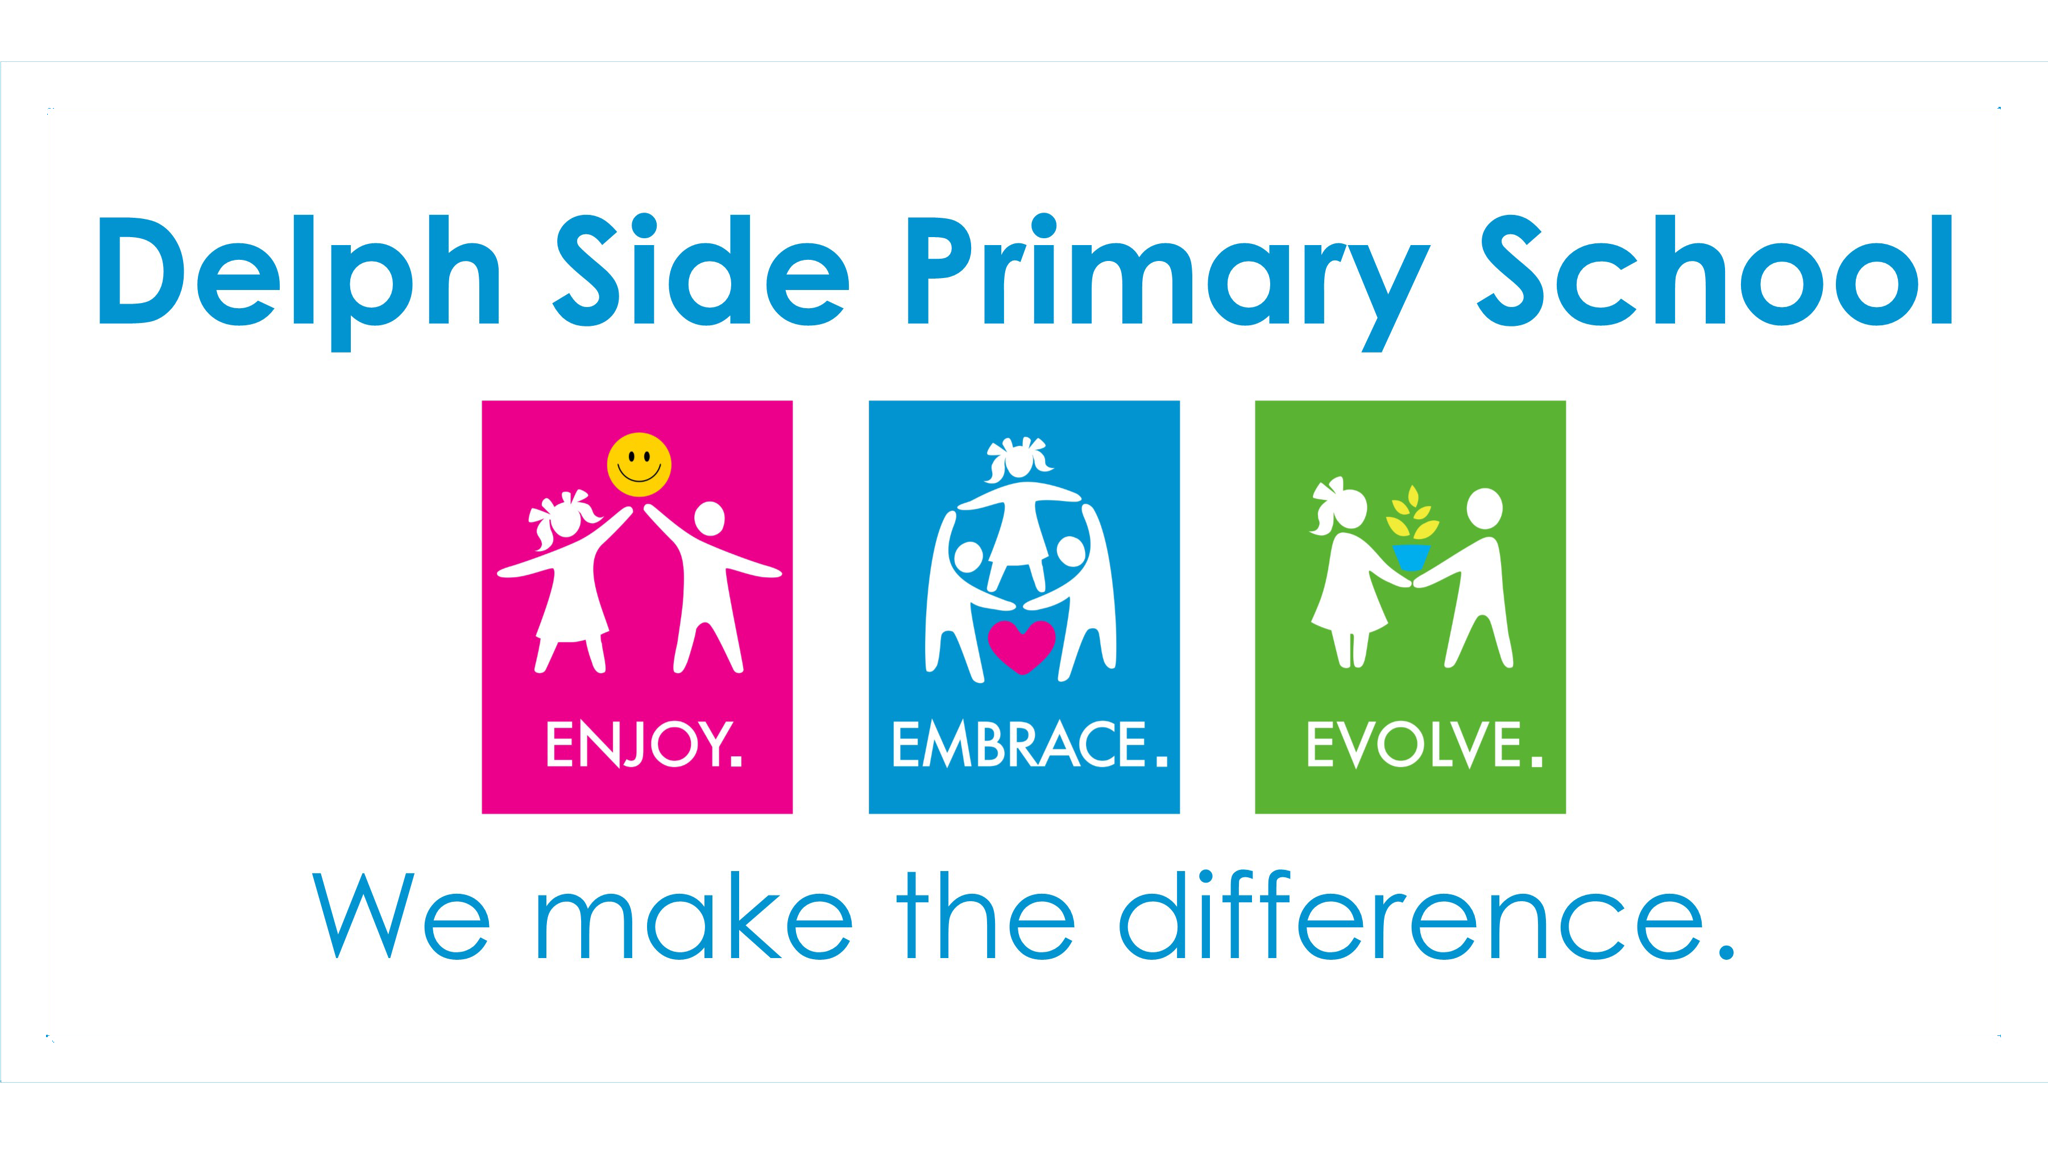 Delph Side Community Primary School